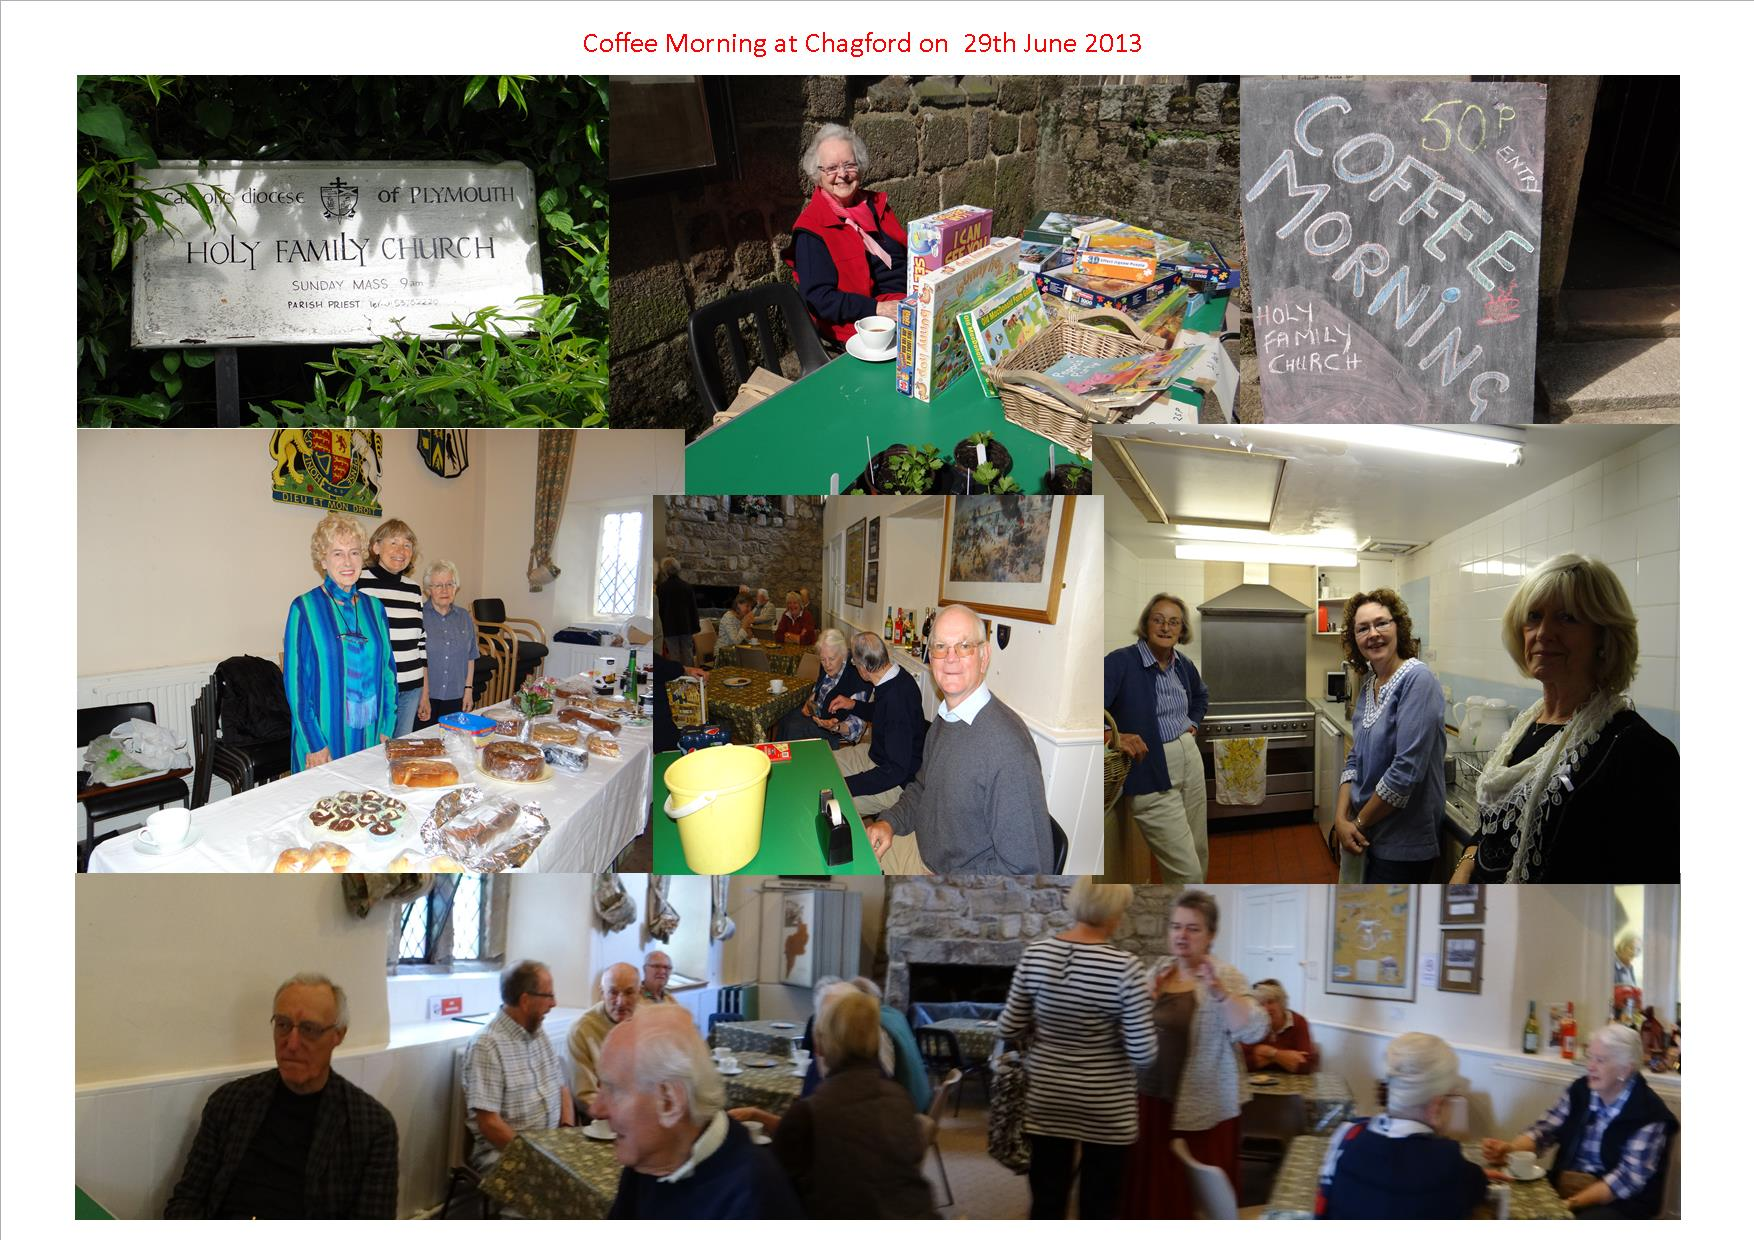 chagford-coffee-morning-29th-june-2013